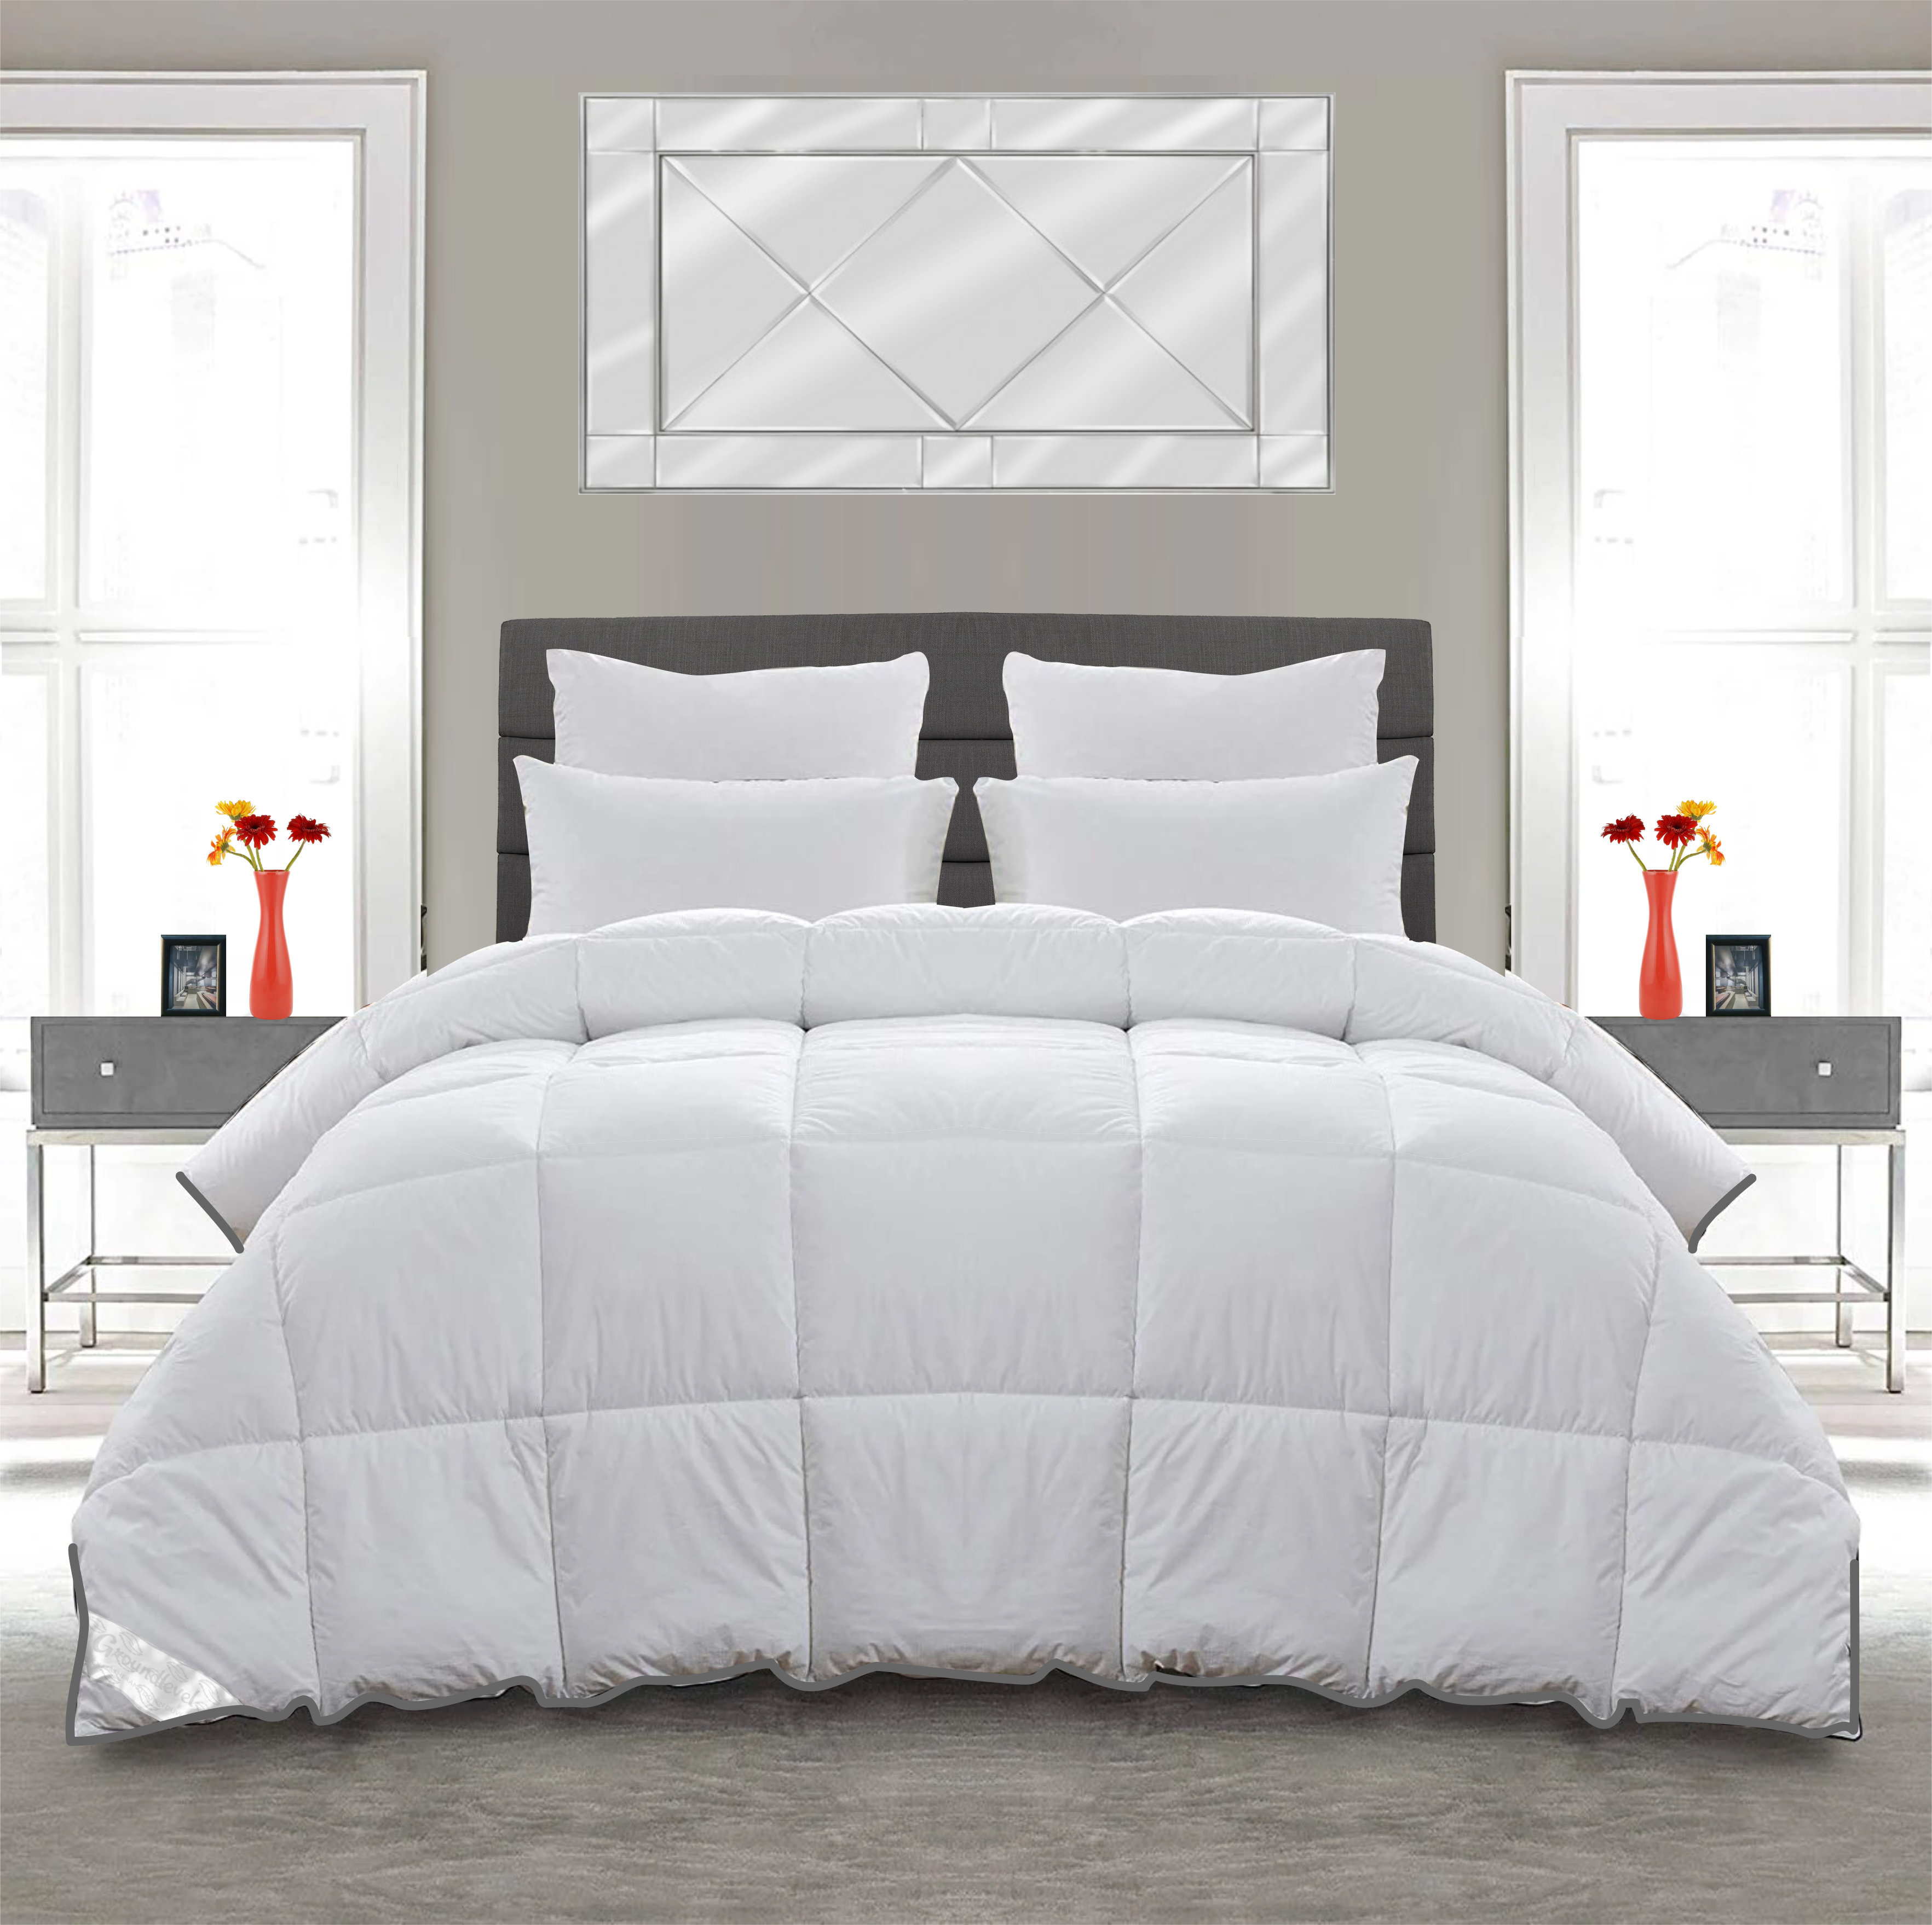 Symple Stuff Shredded Supersoft Goose Feather And Down 13 5 Tog Duvet Reviews Wayfair Co Uk